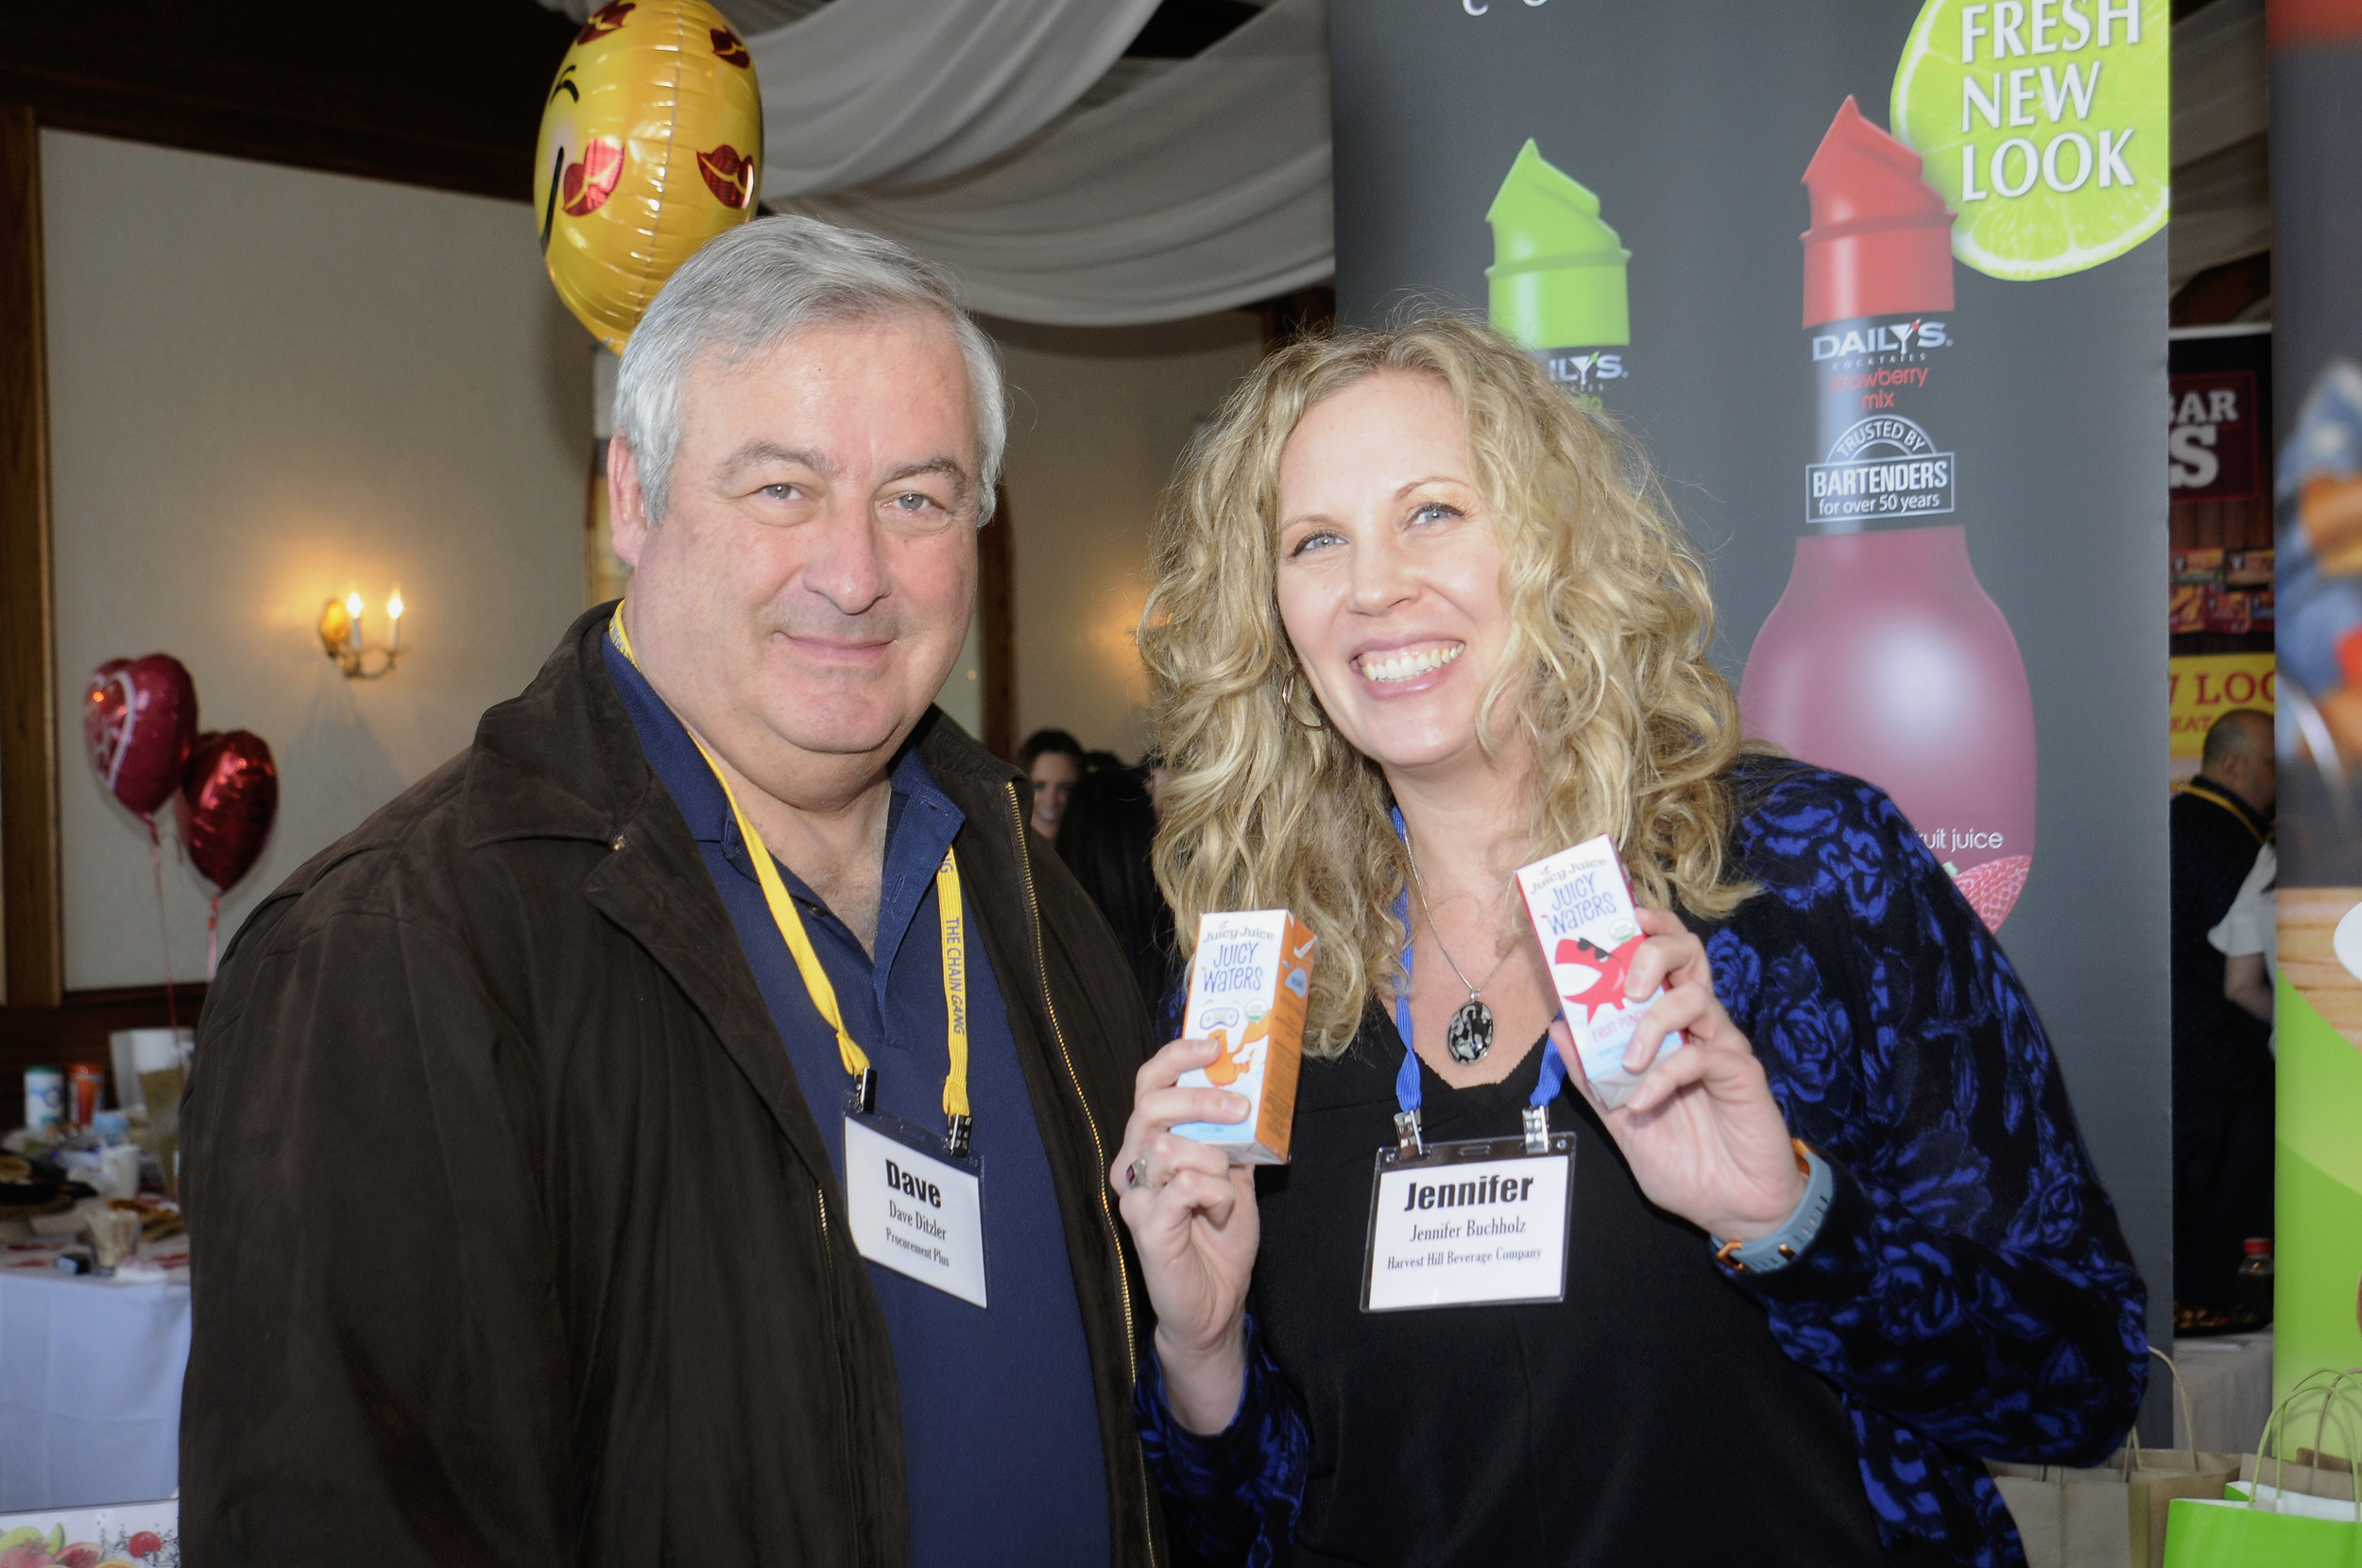 047 Market Vision Event at The Reef in Long Beach 02-05-19.jpg